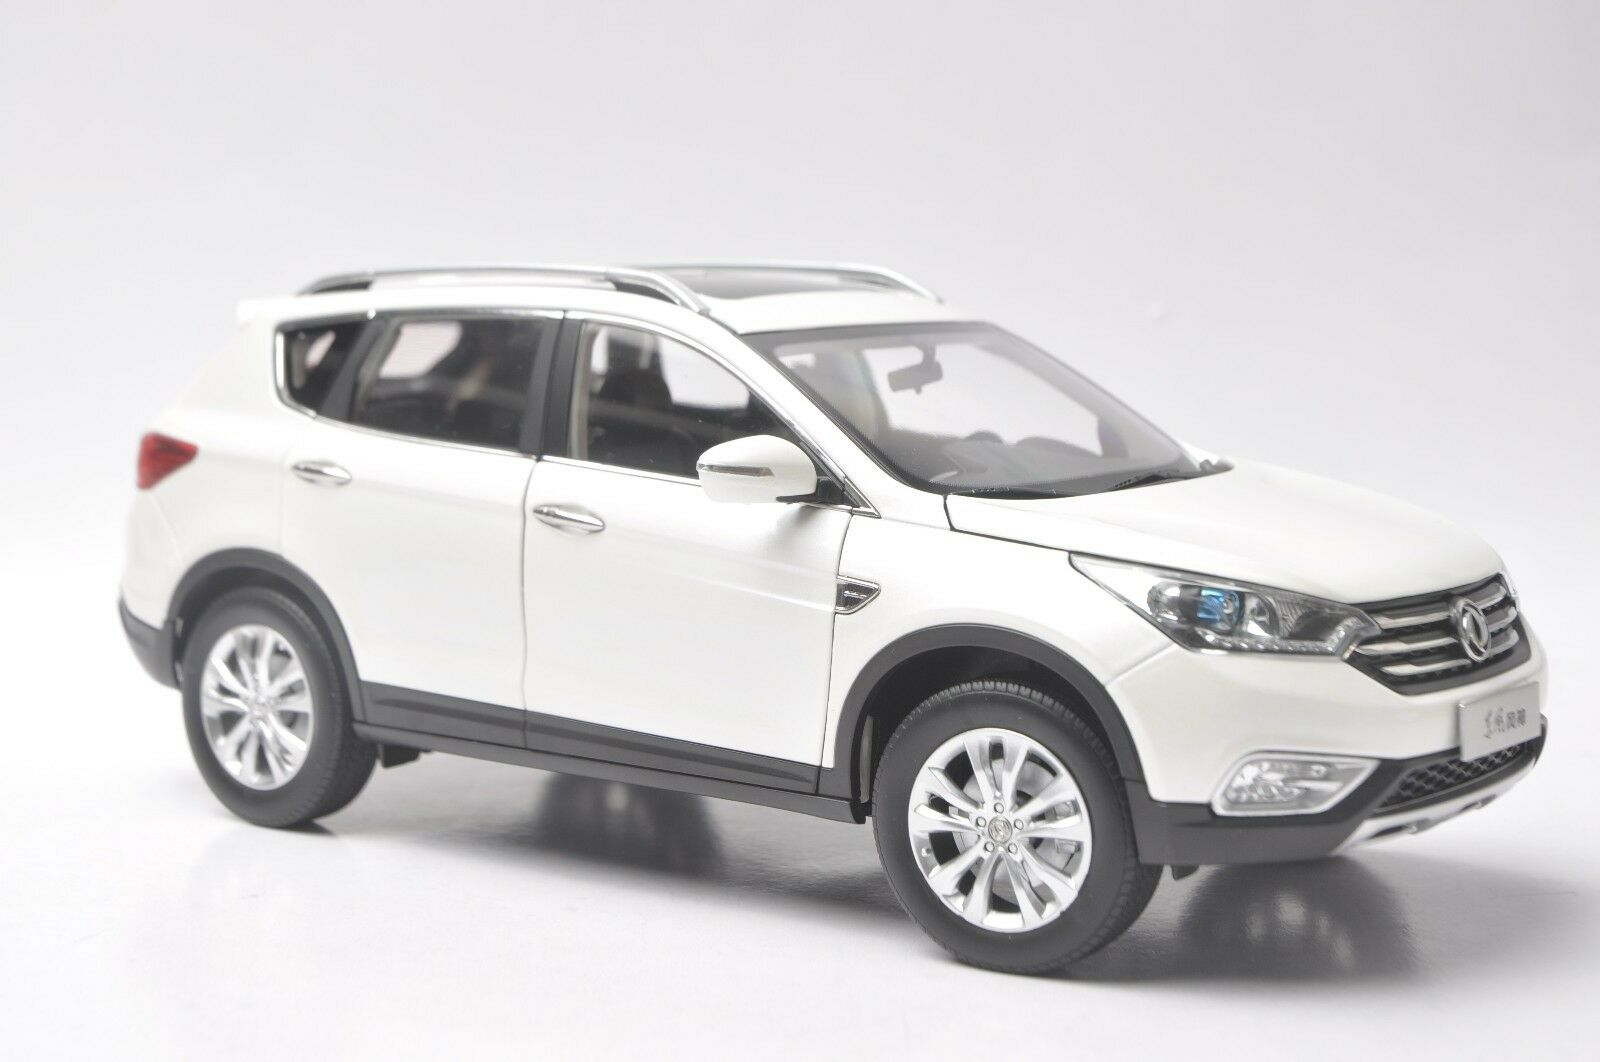 Dongfeng aeolus ax7 auto - modell im maßstab 1,18 Weiß